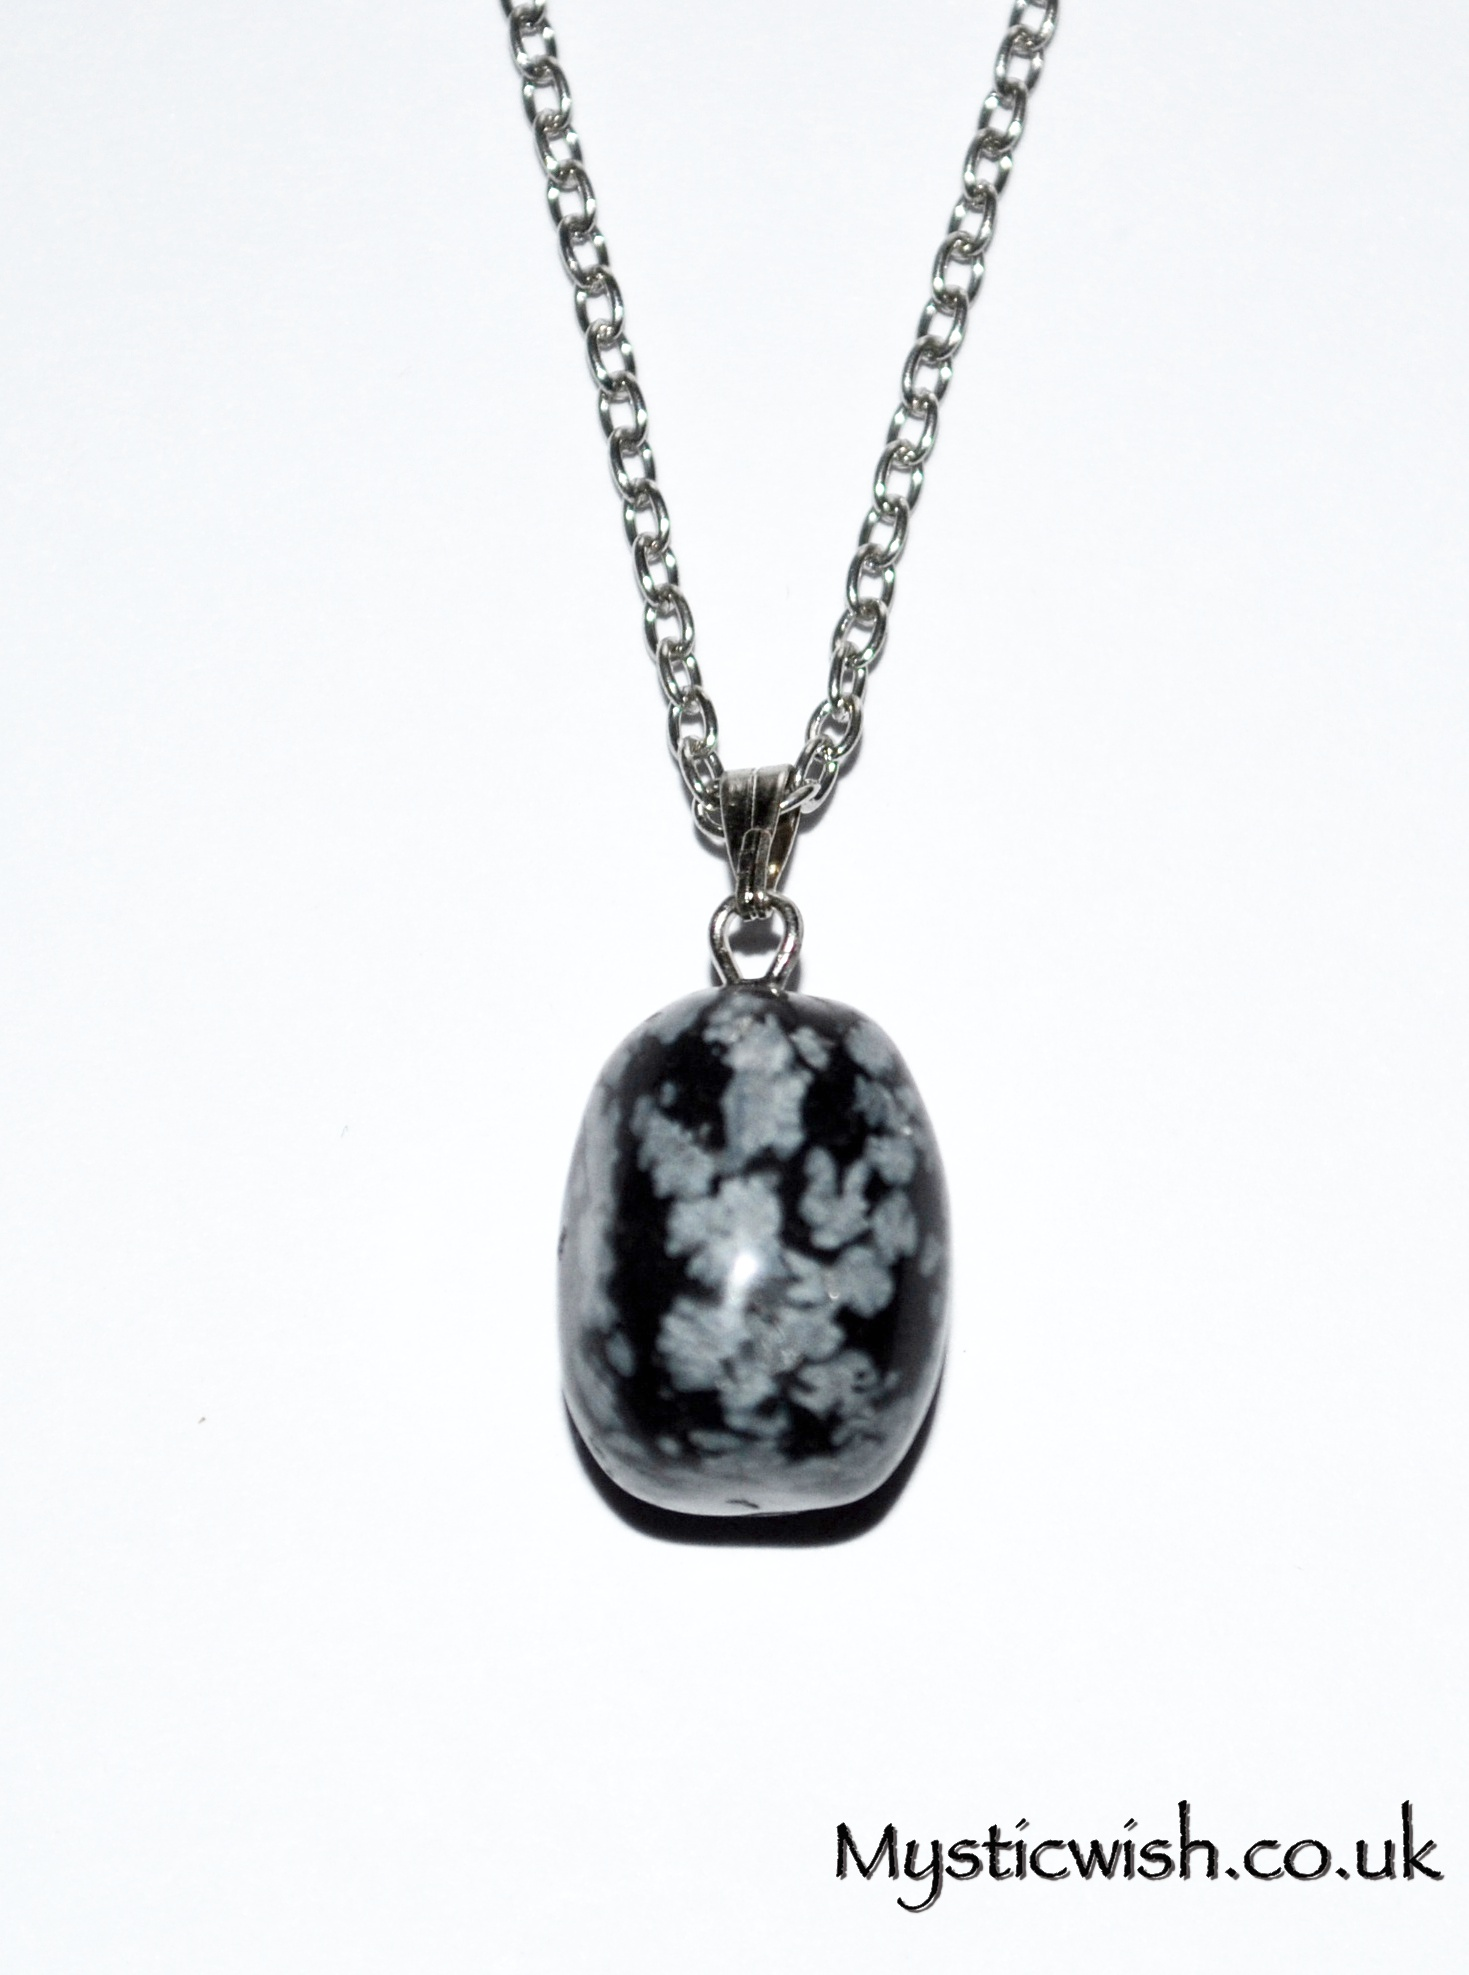 Snowflake obsidian pendant agpp56 fragrantntescreus snowflake obsidian pendant agpp56 aloadofball Image collections